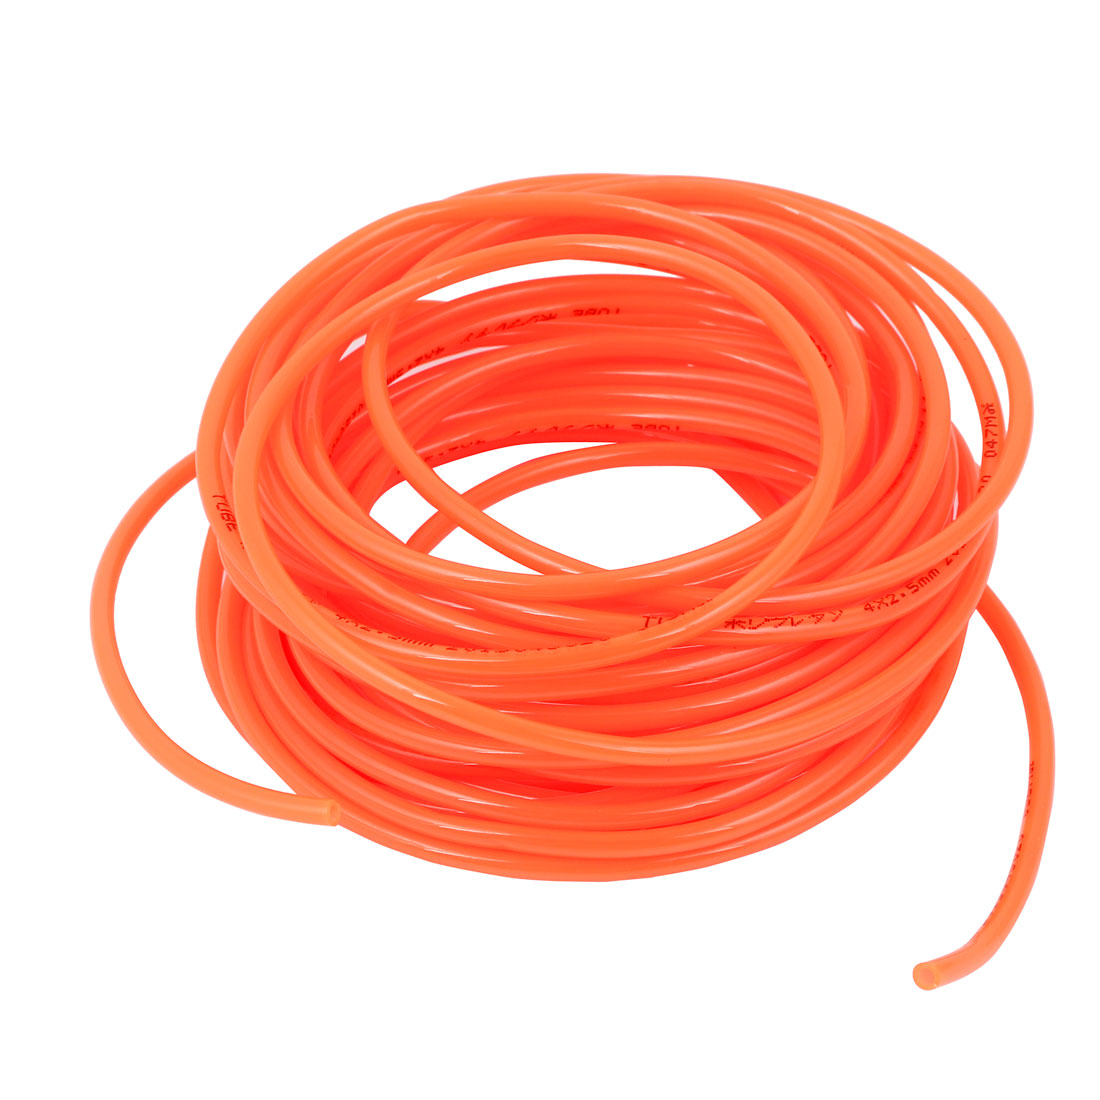 10 Meter Long 4mm x 2.5mm Orange Polyurethane Flexible Air Tube PU Tubing Pneumatic Pipe Hose